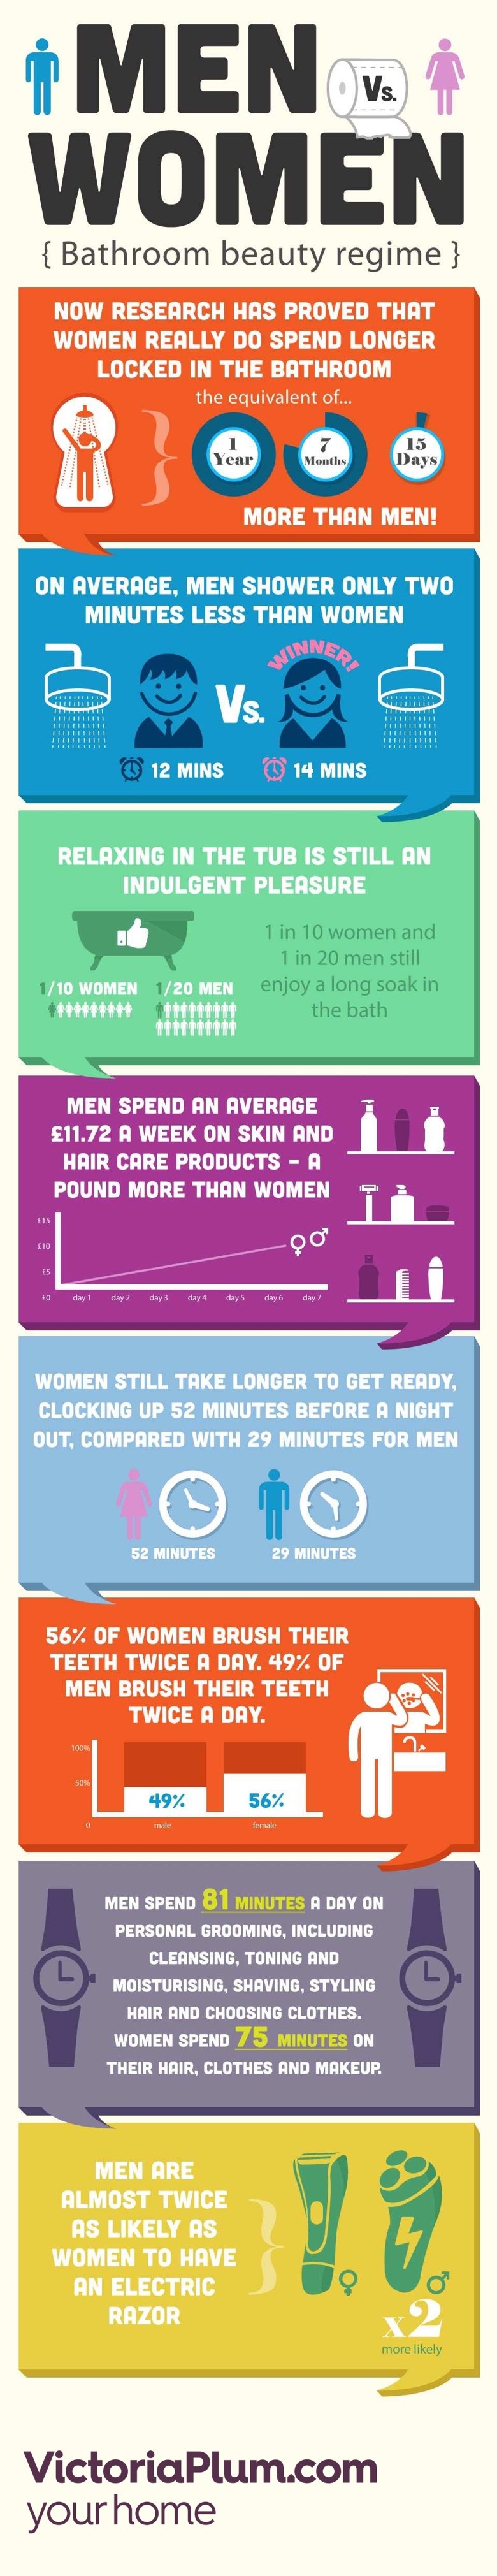 Men vs Women in the Bathroom Infographic